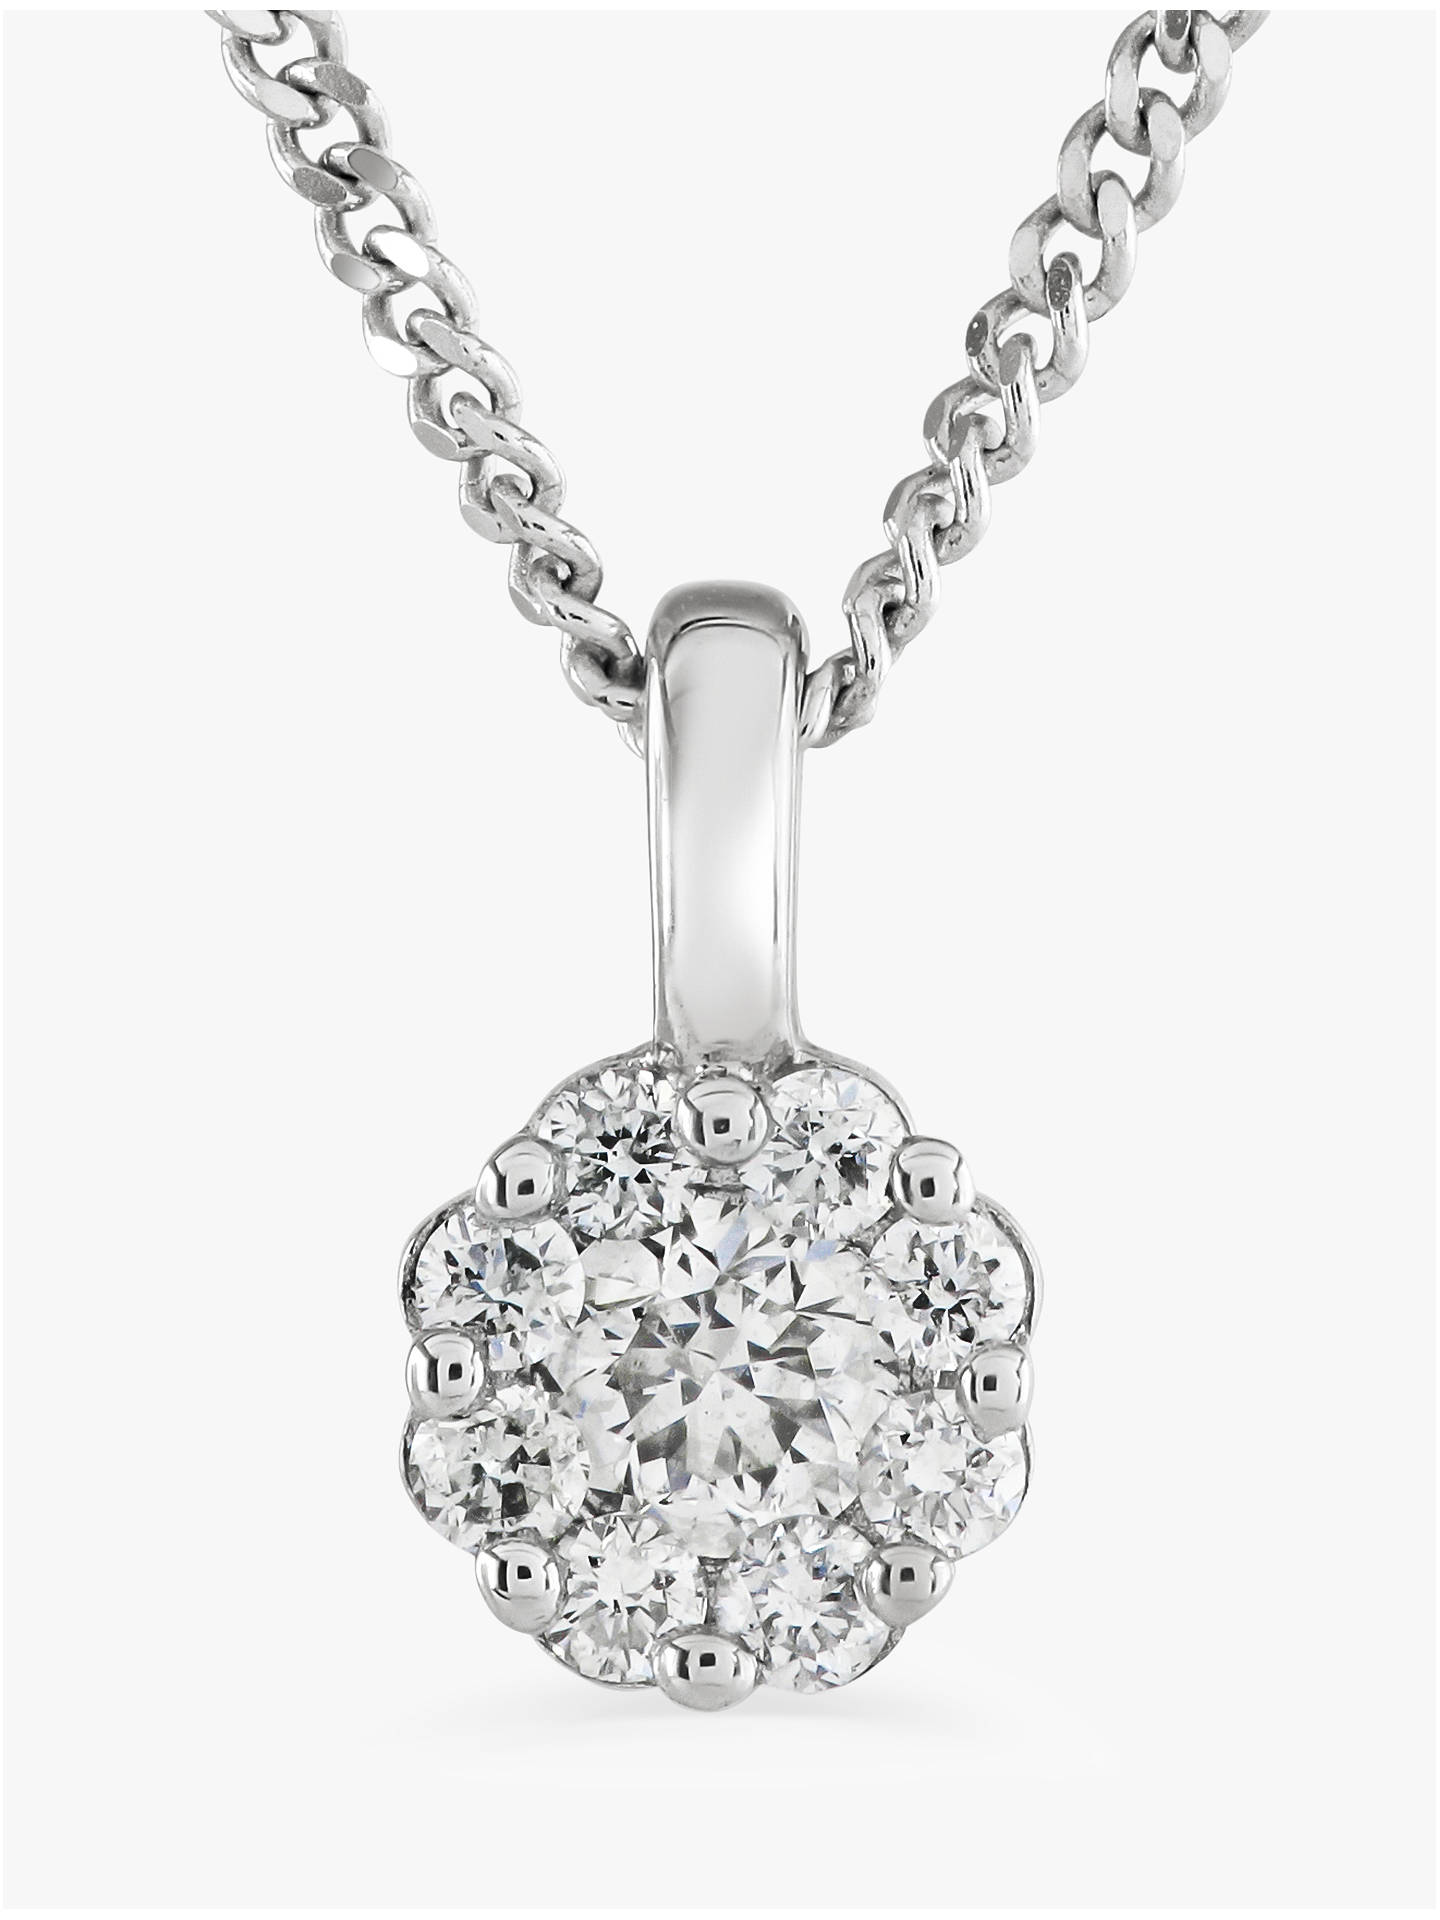 BuyBrown & Newirth 9ct White Gold Diamond Pendant Necklace, 0.15ct Online at johnlewis.com